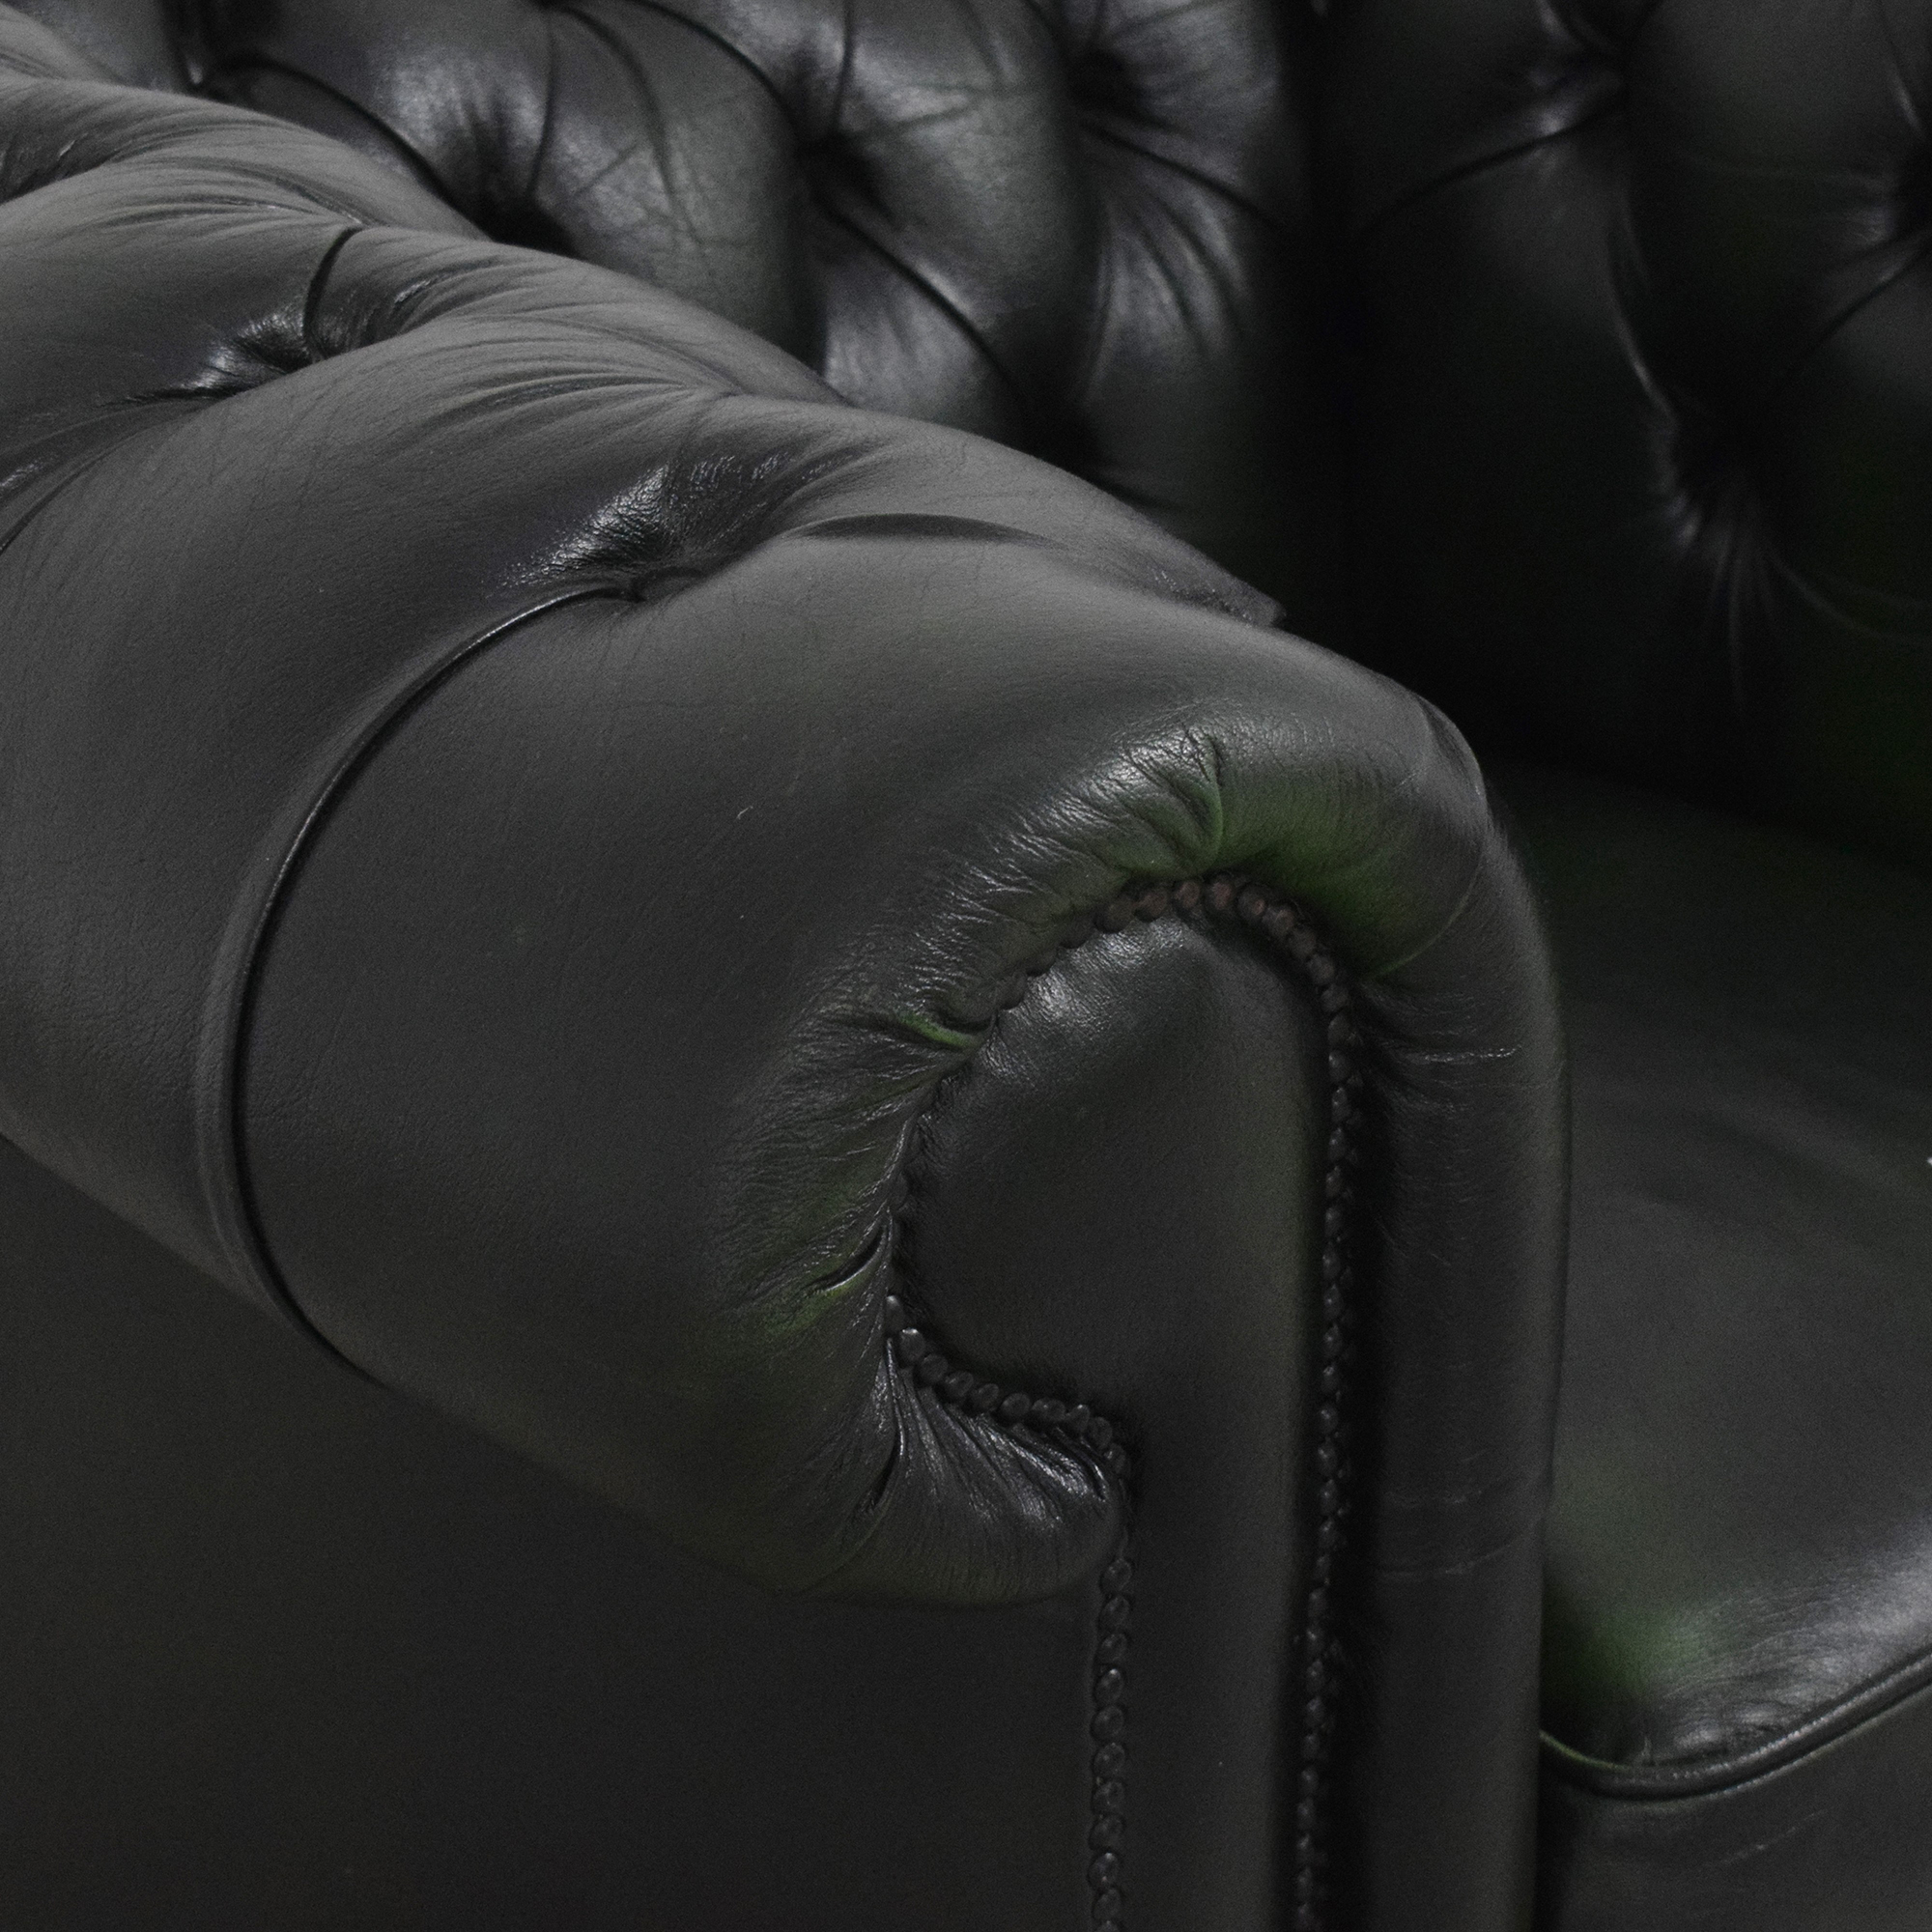 Chesterfield.com Chesterfield Brighton Chair on sale